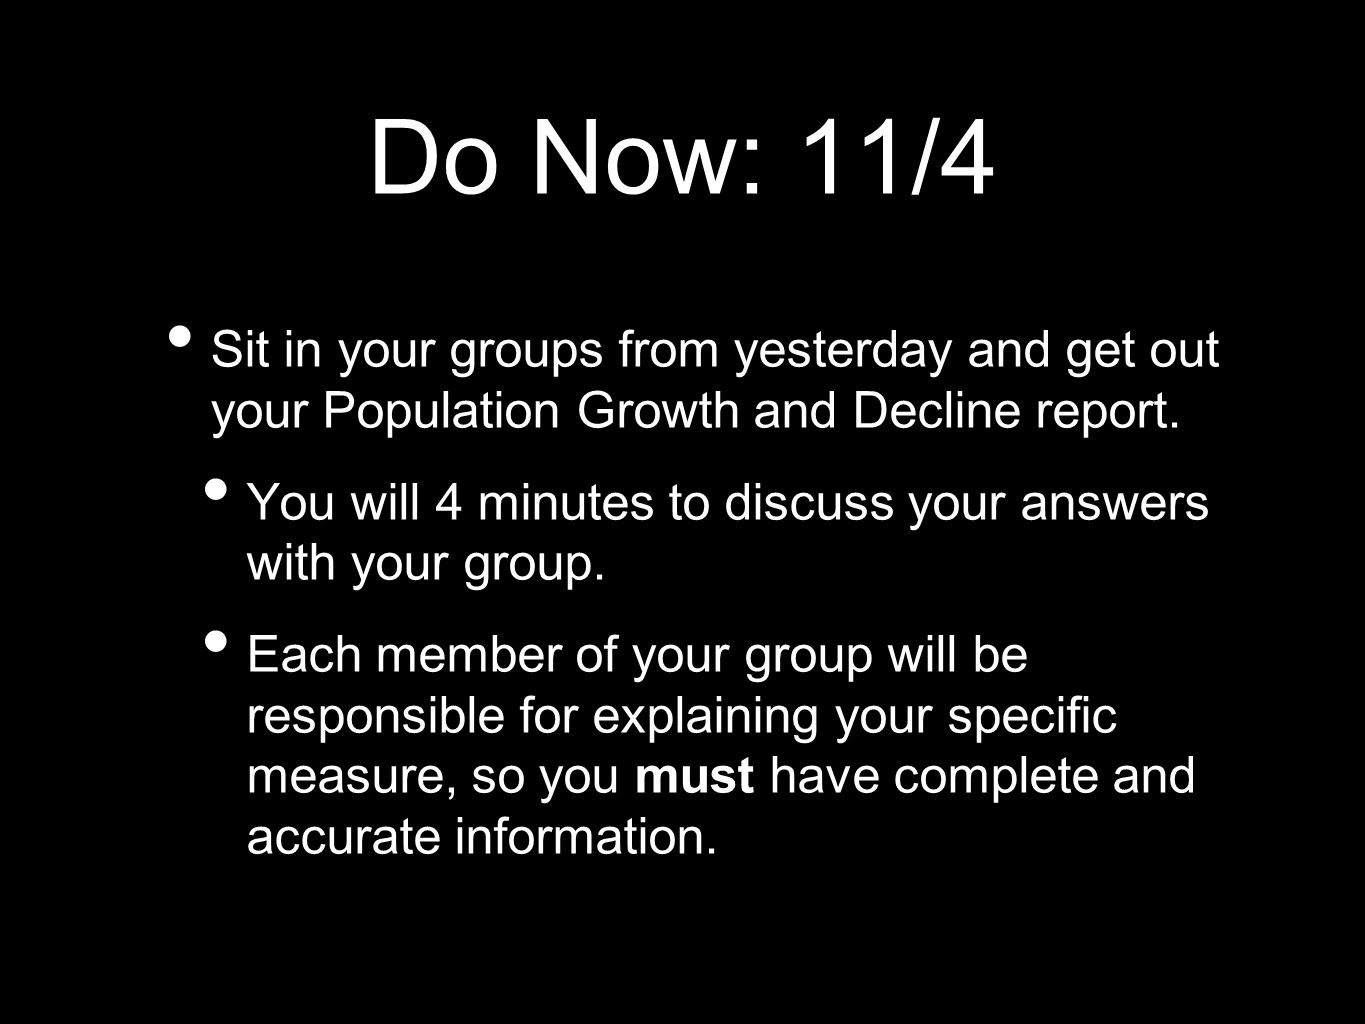 Do Now: 11/4Sit in your groups from yesterday and get out your Population Growth and Decline report.